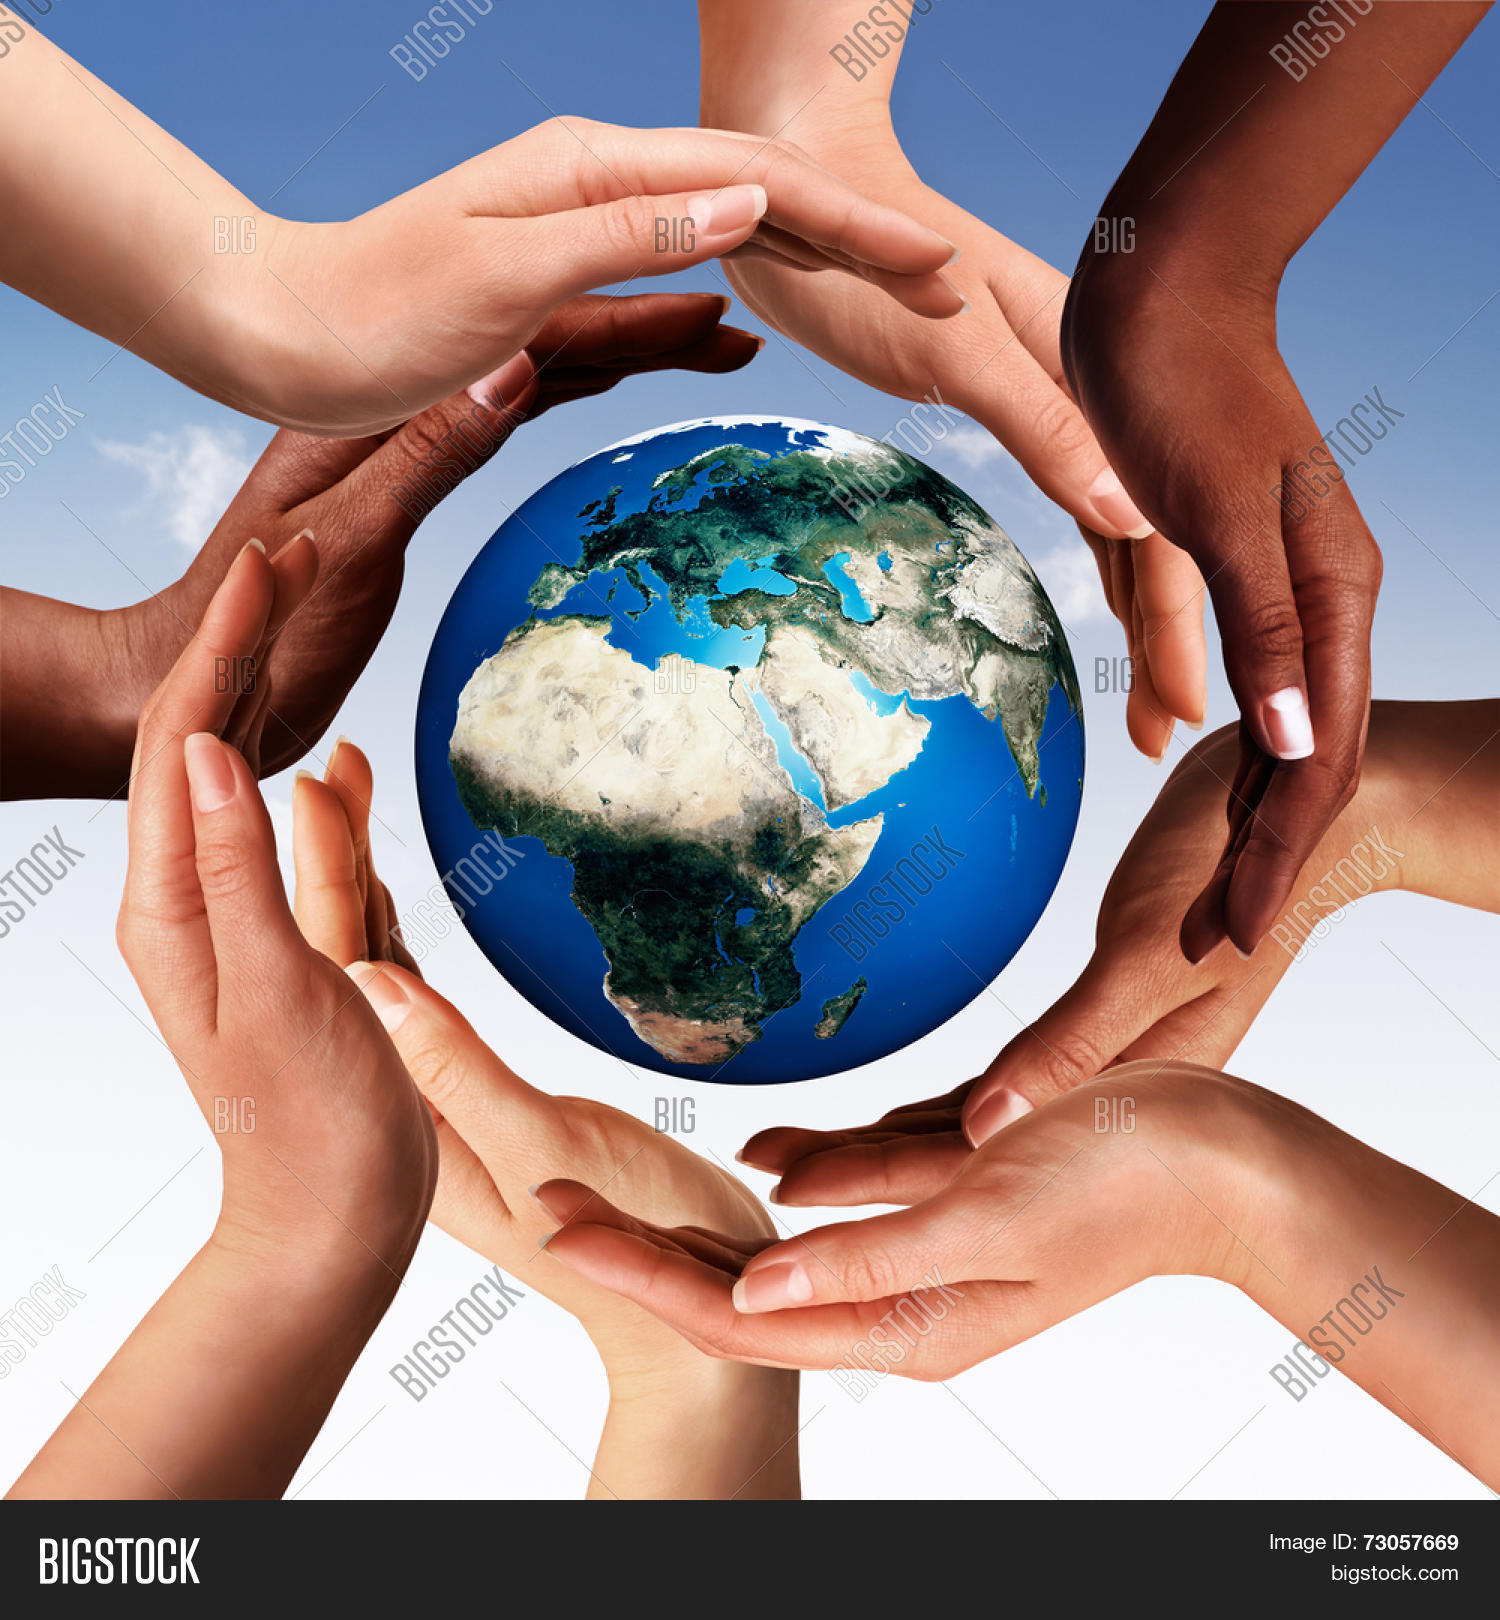 Conceptual peace cultural diversity image photo bigstock conceptual peace and cultural diversity symbol of multiracial hands making a circle together around the world biocorpaavc